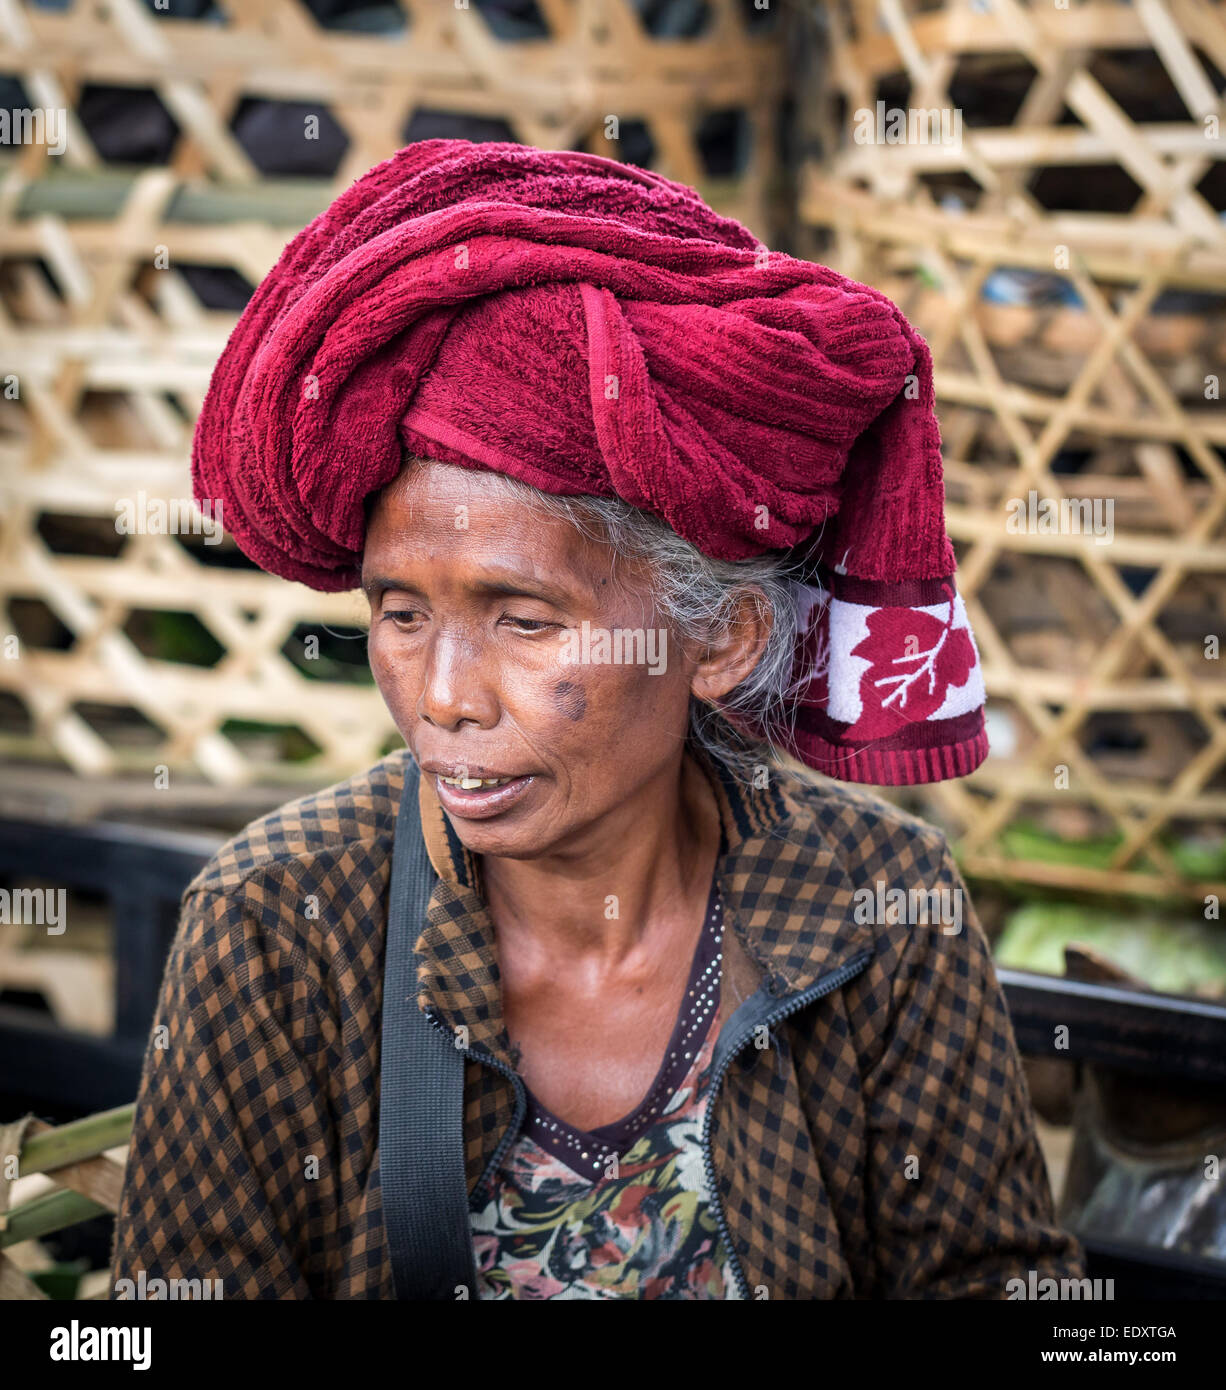 Elderly woman wearing a head scarf, Ubud district, Bali, Indonesia - Stock Image